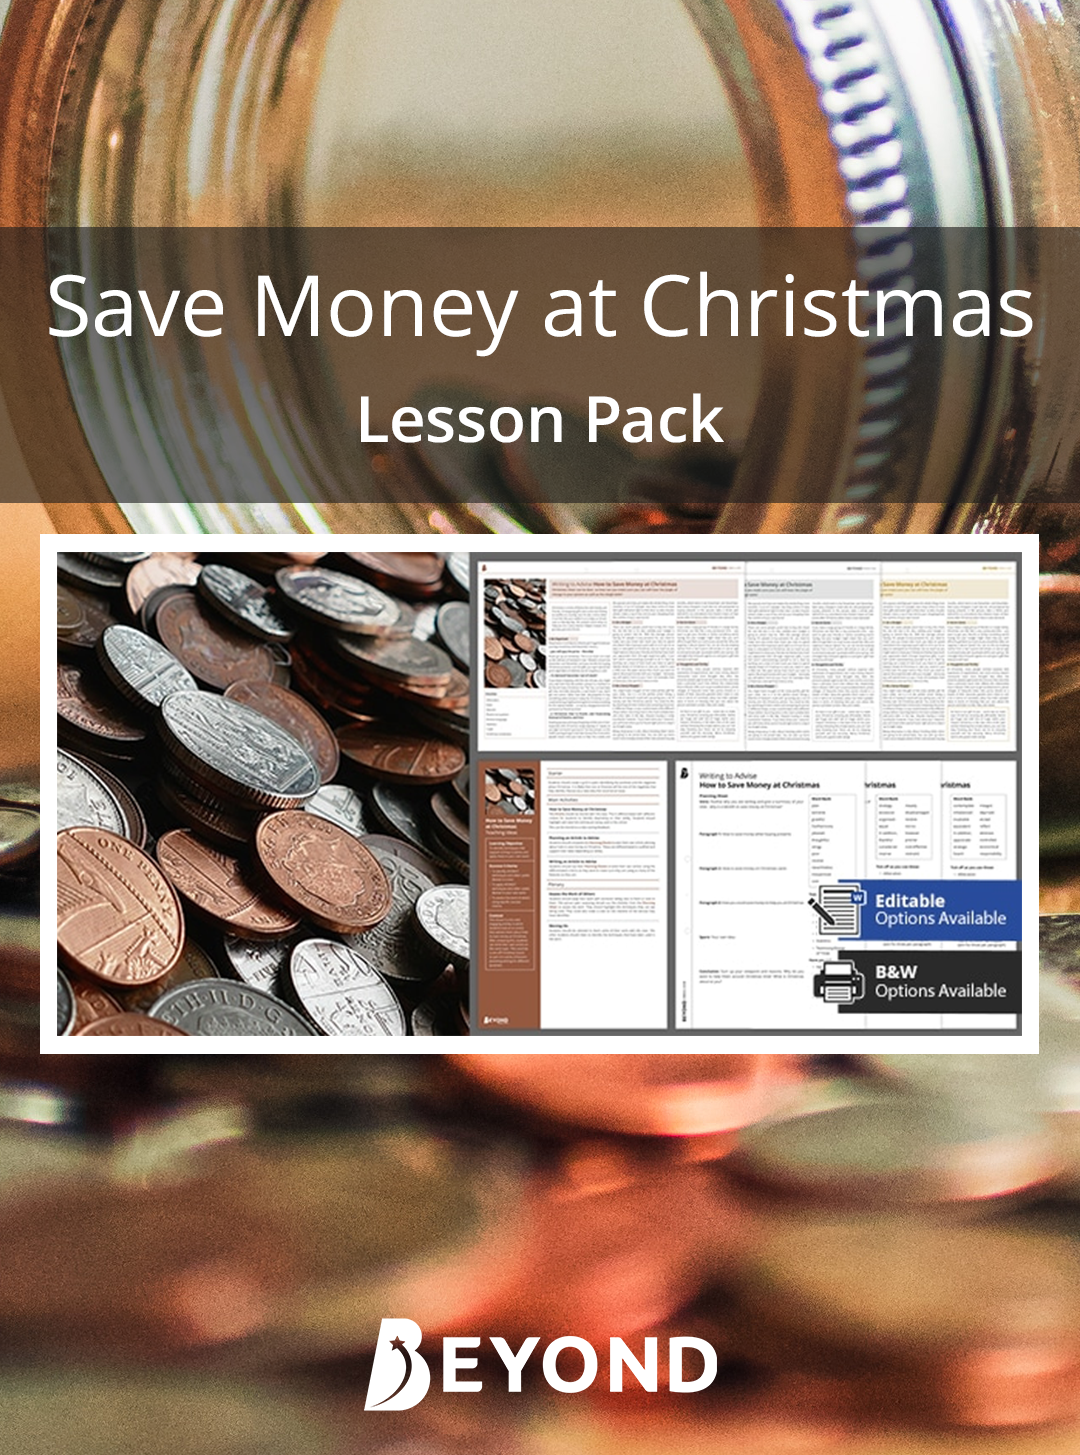 Beyond S Penny Pinching Christmas Resource Looks At